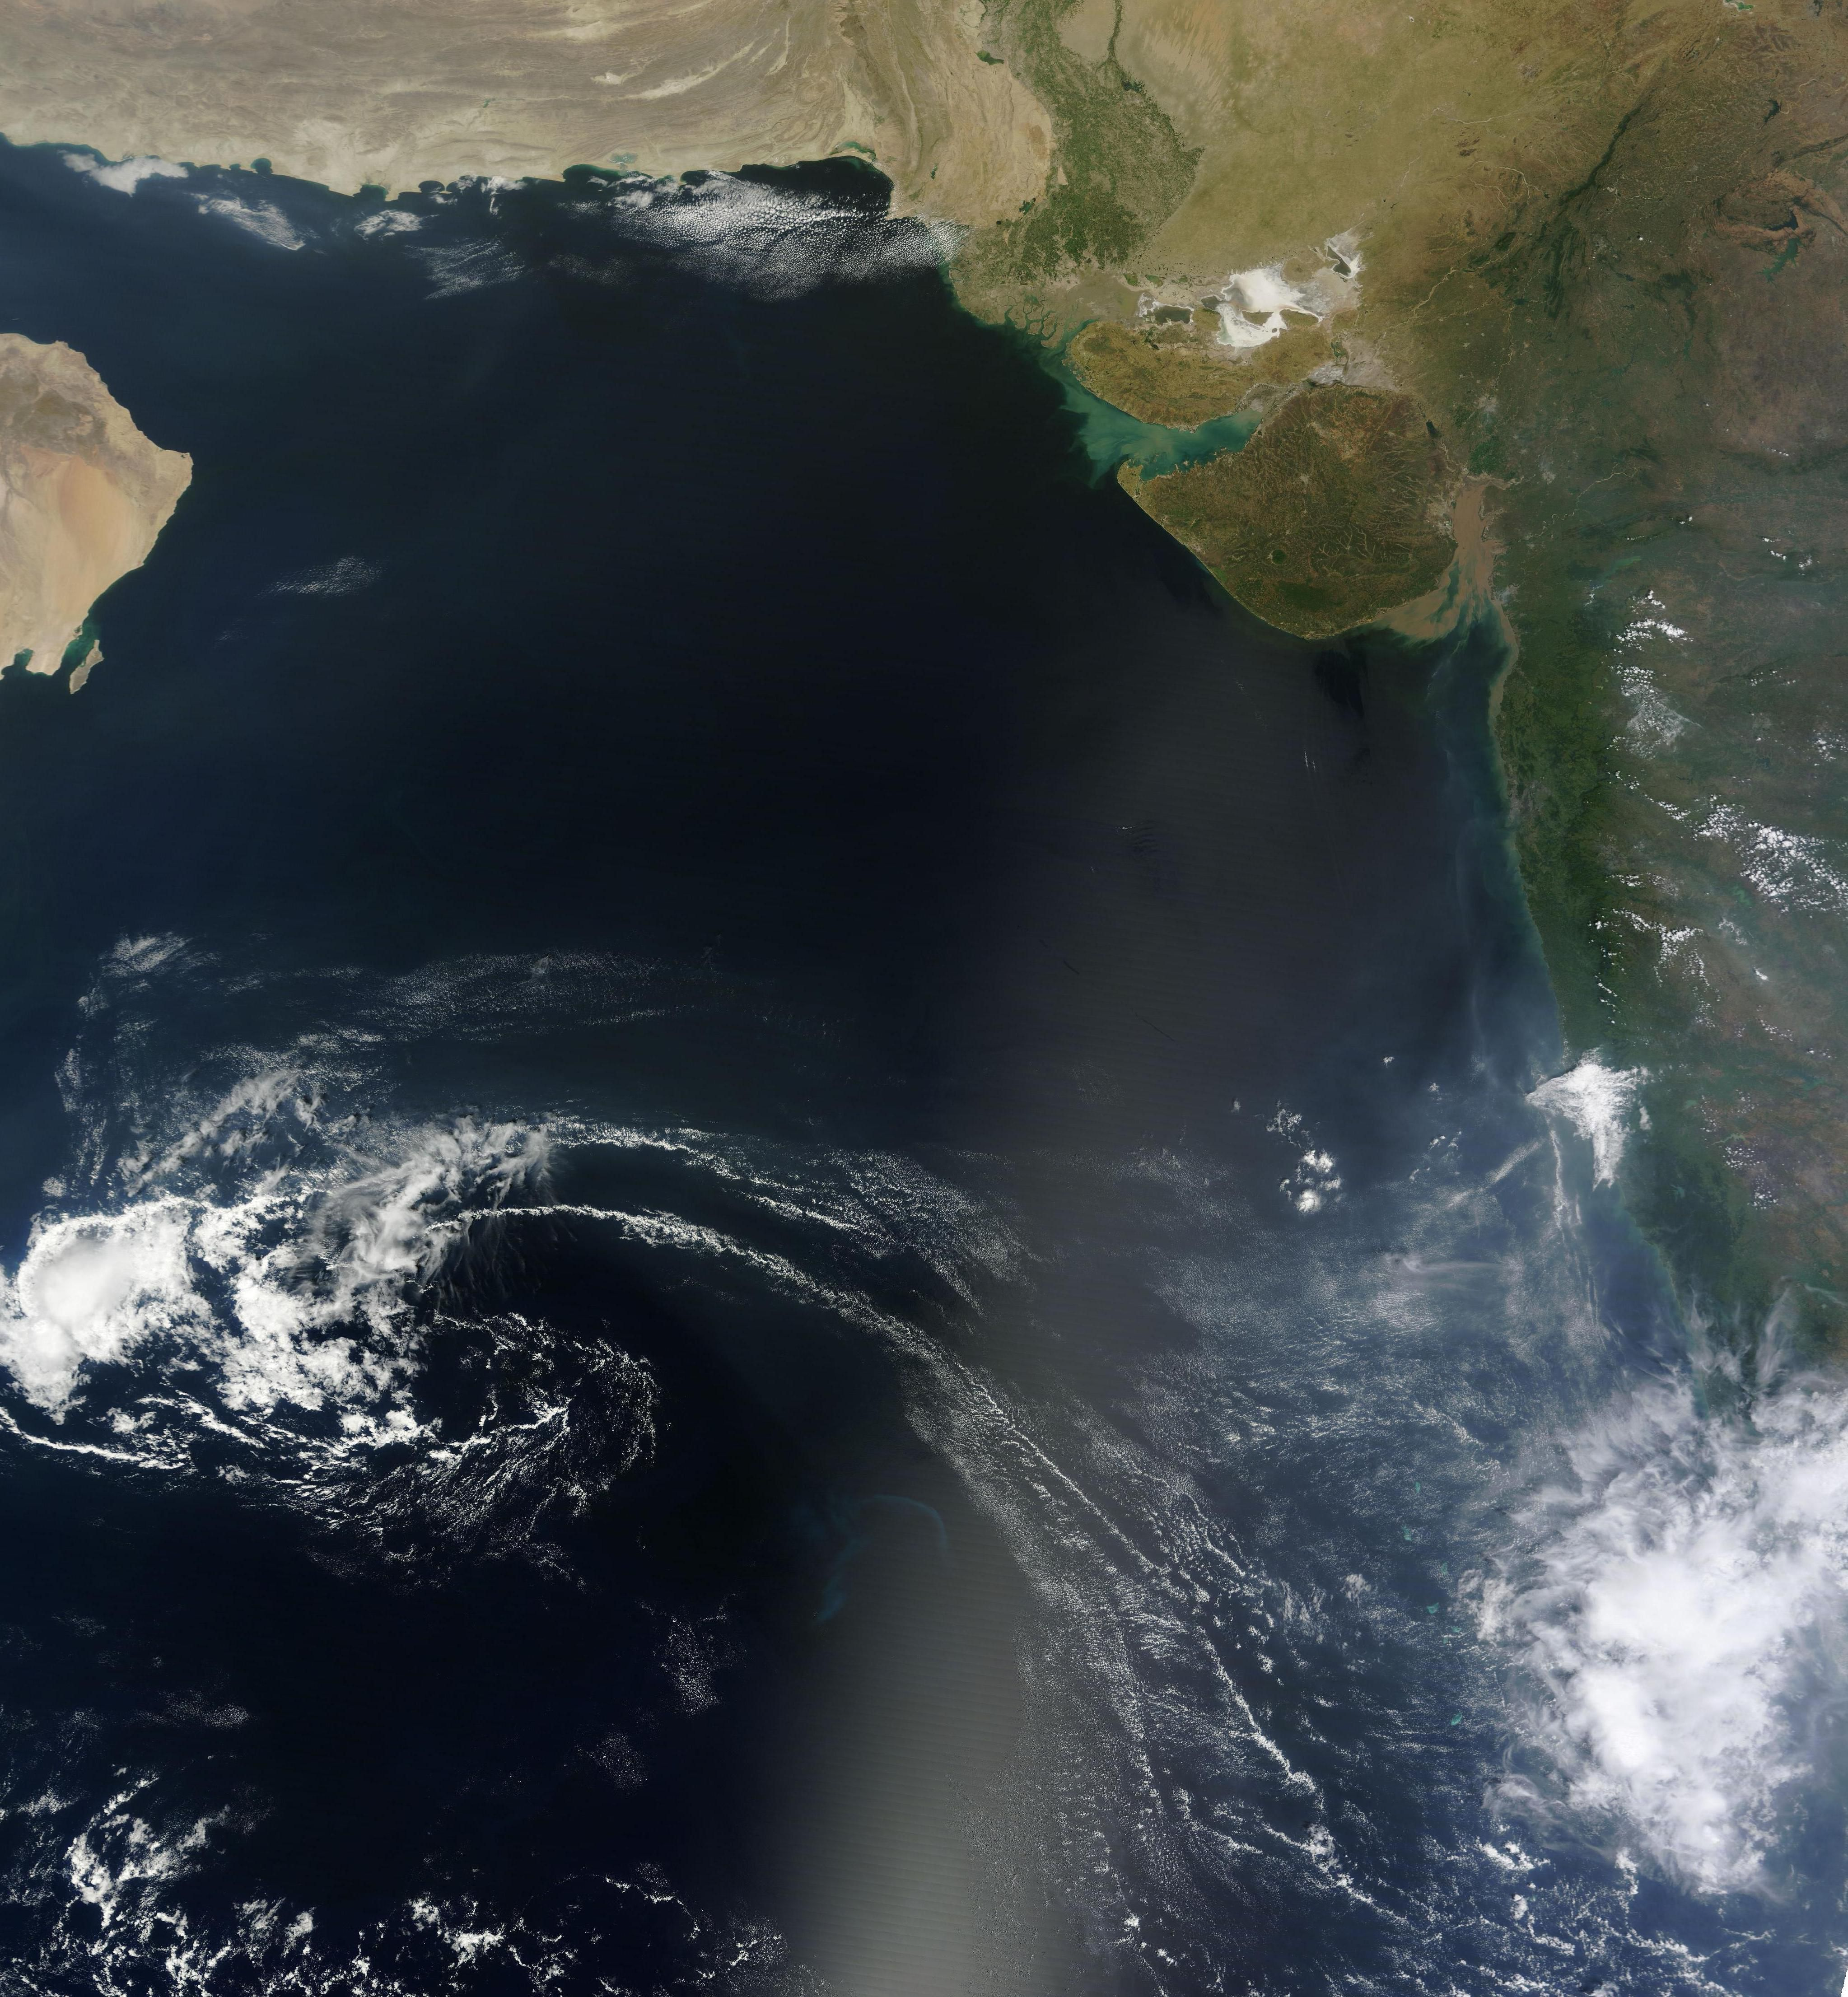 The Arabian Sea is located in the northwestern